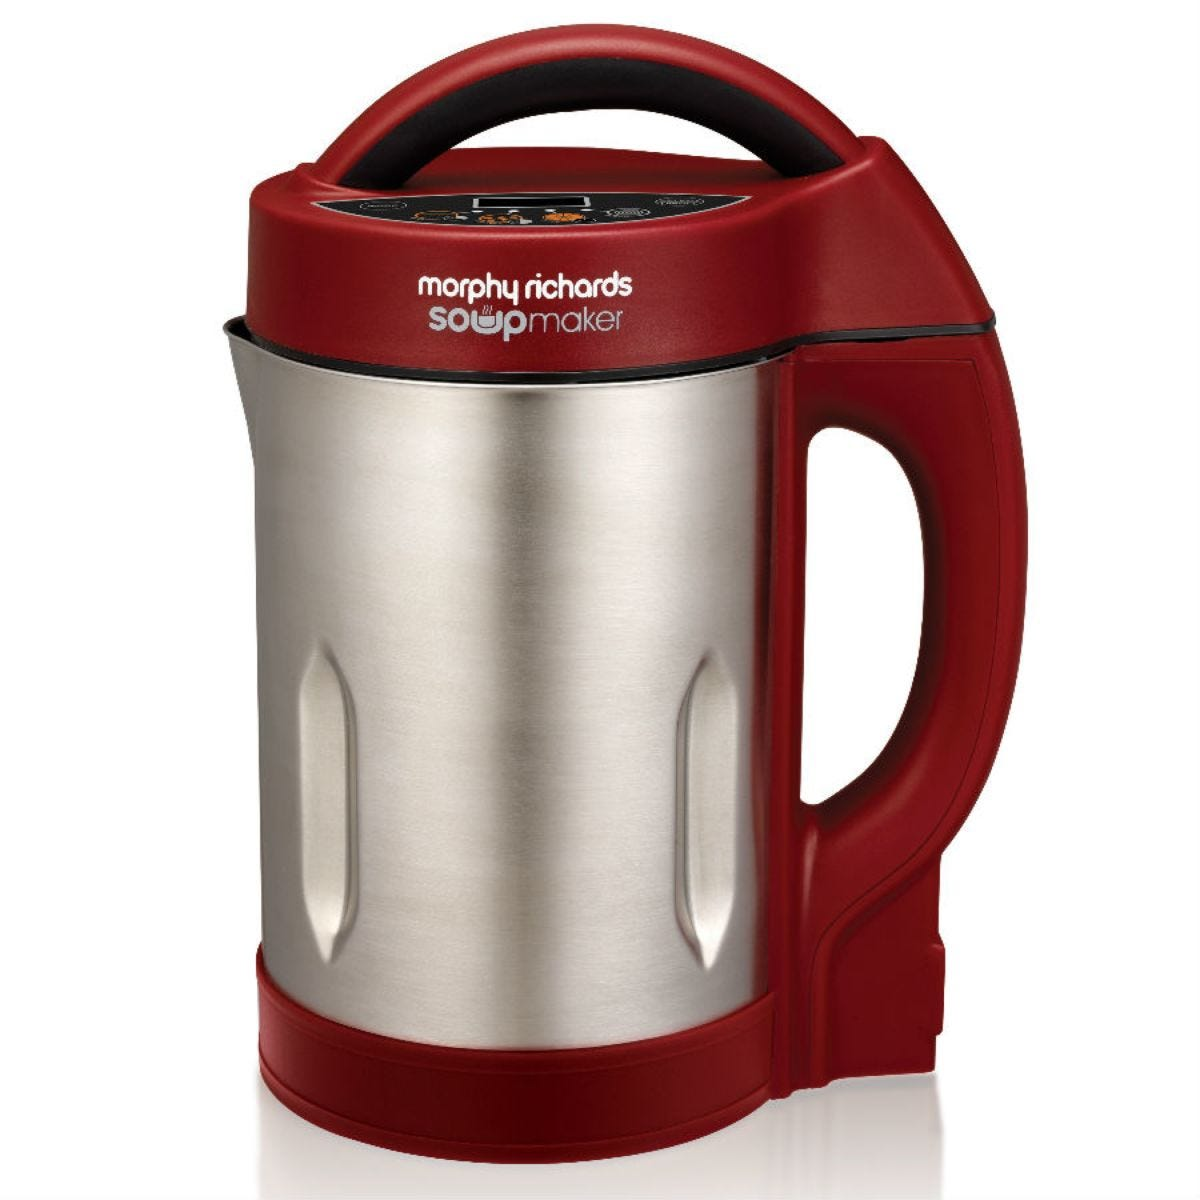 Morphy Richards 501018 Stainless Steel Soup Maker - Red